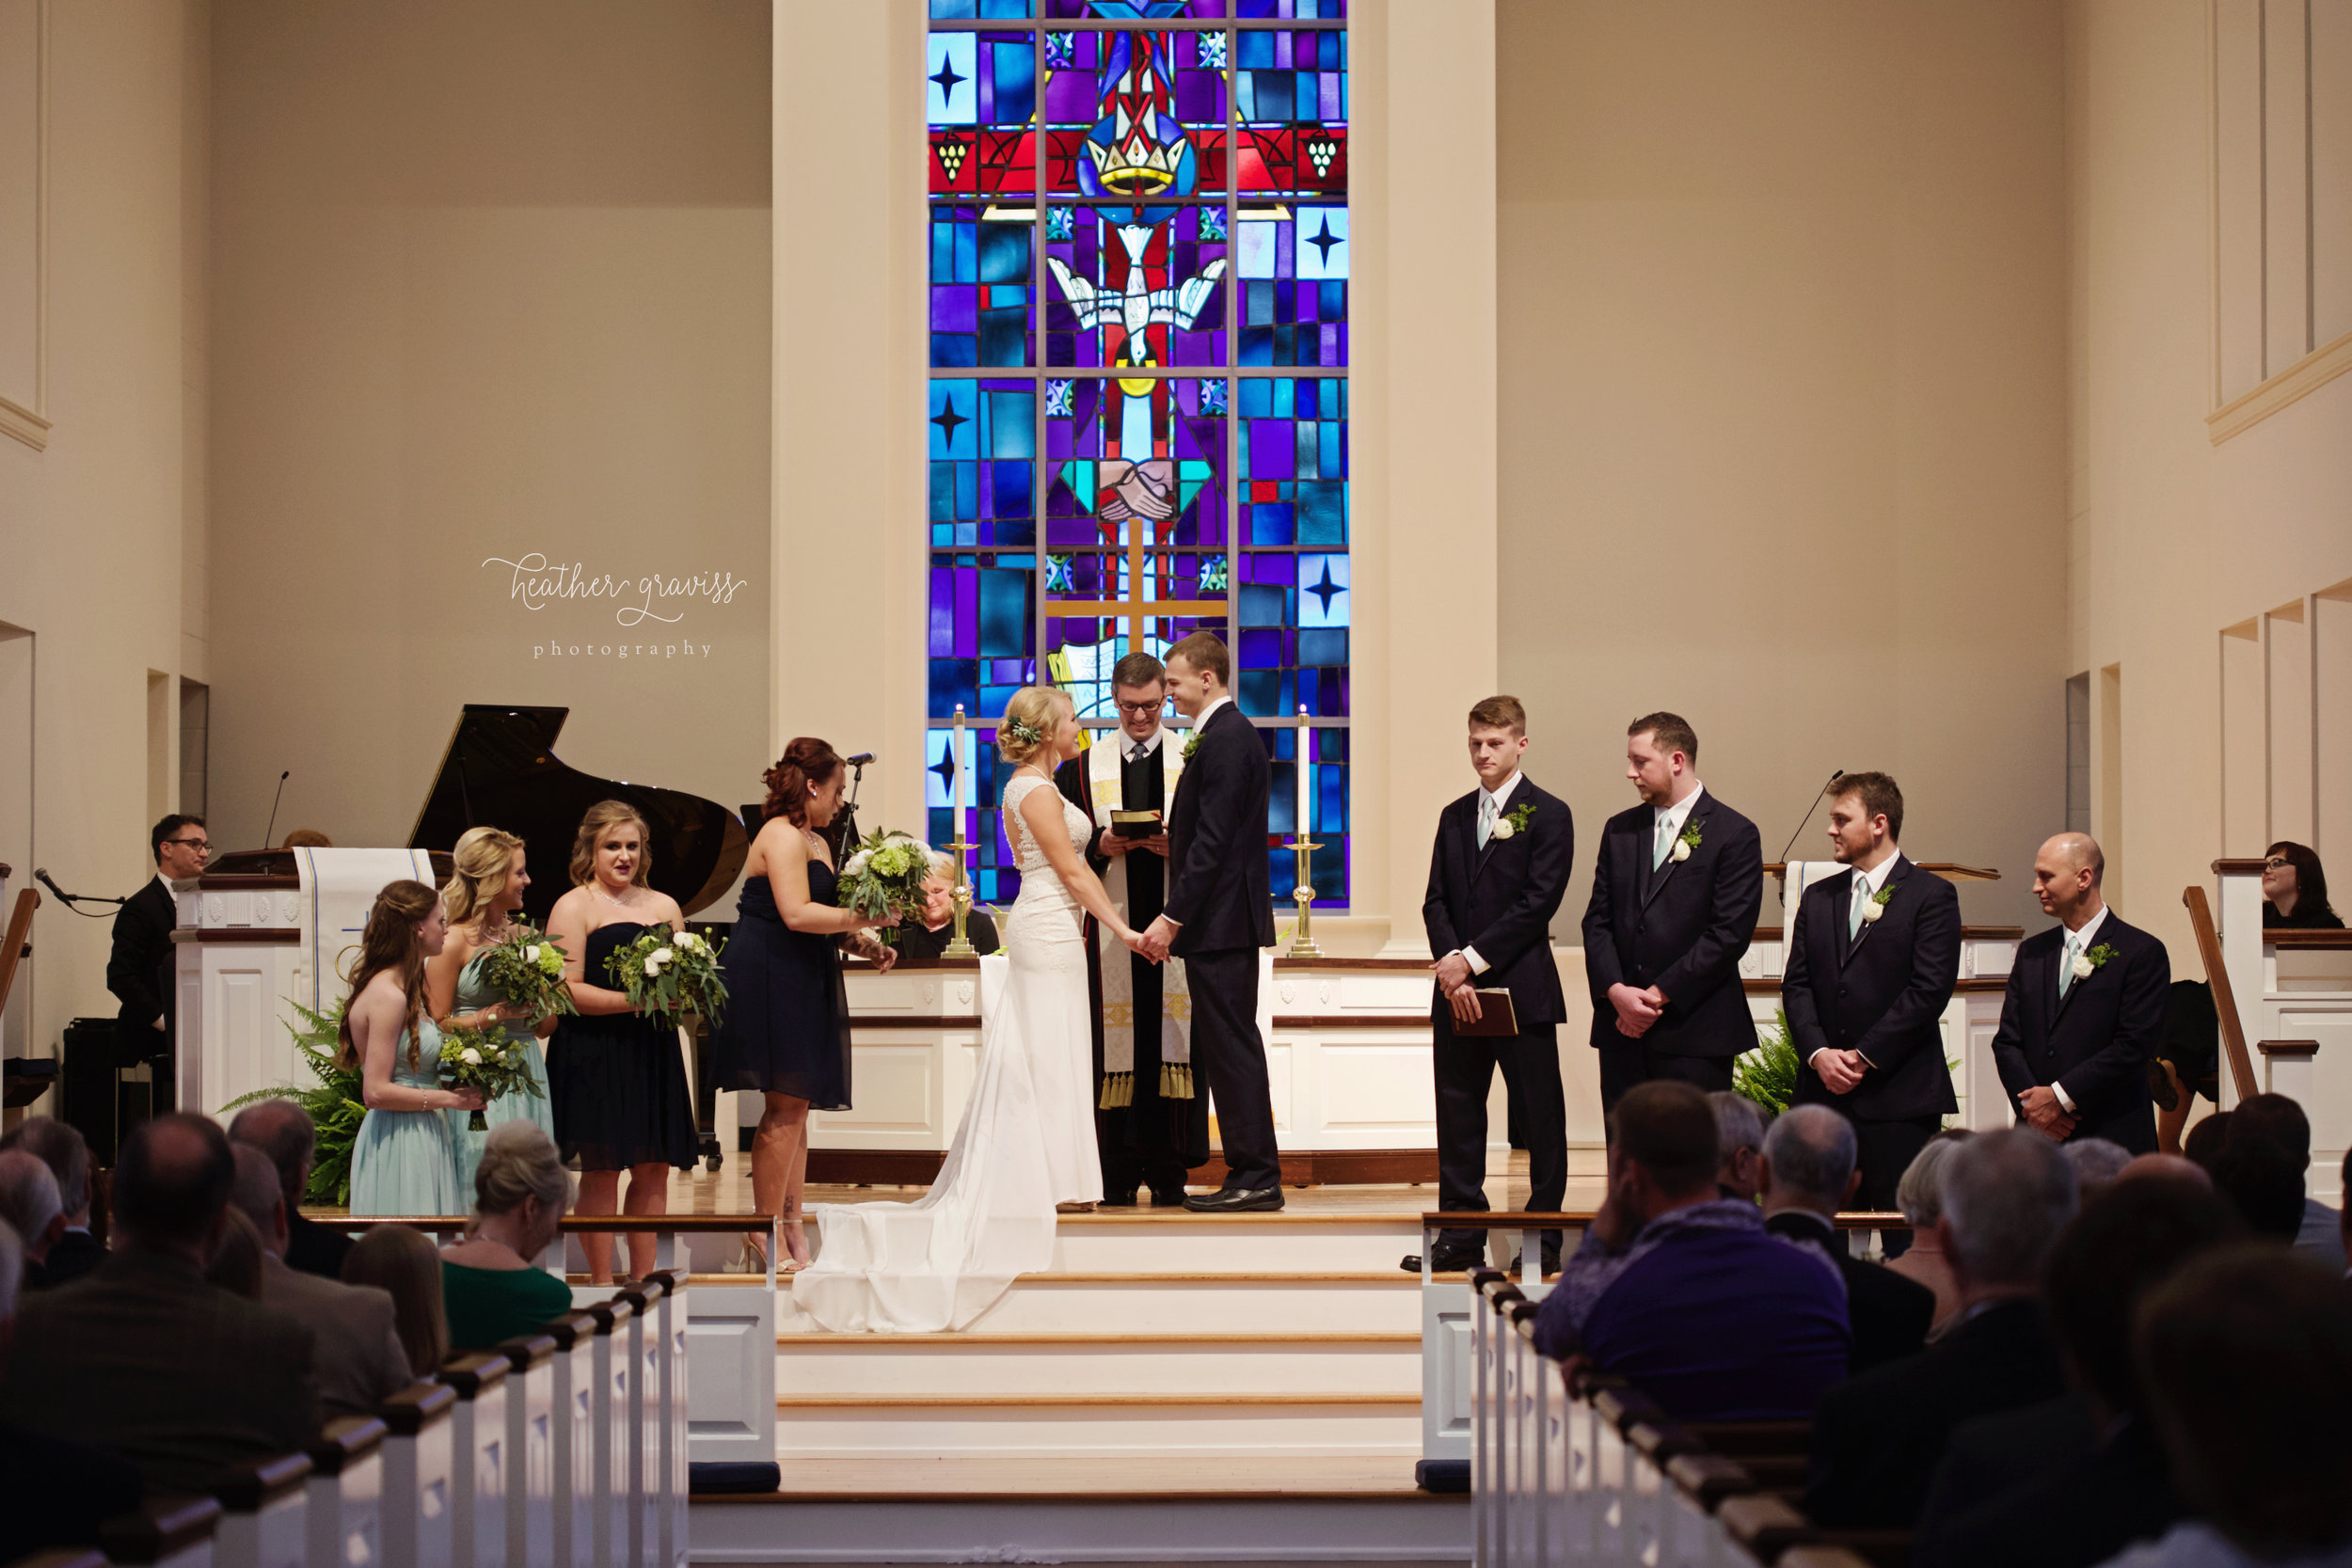 nashville middle tn wedding 065.jpg